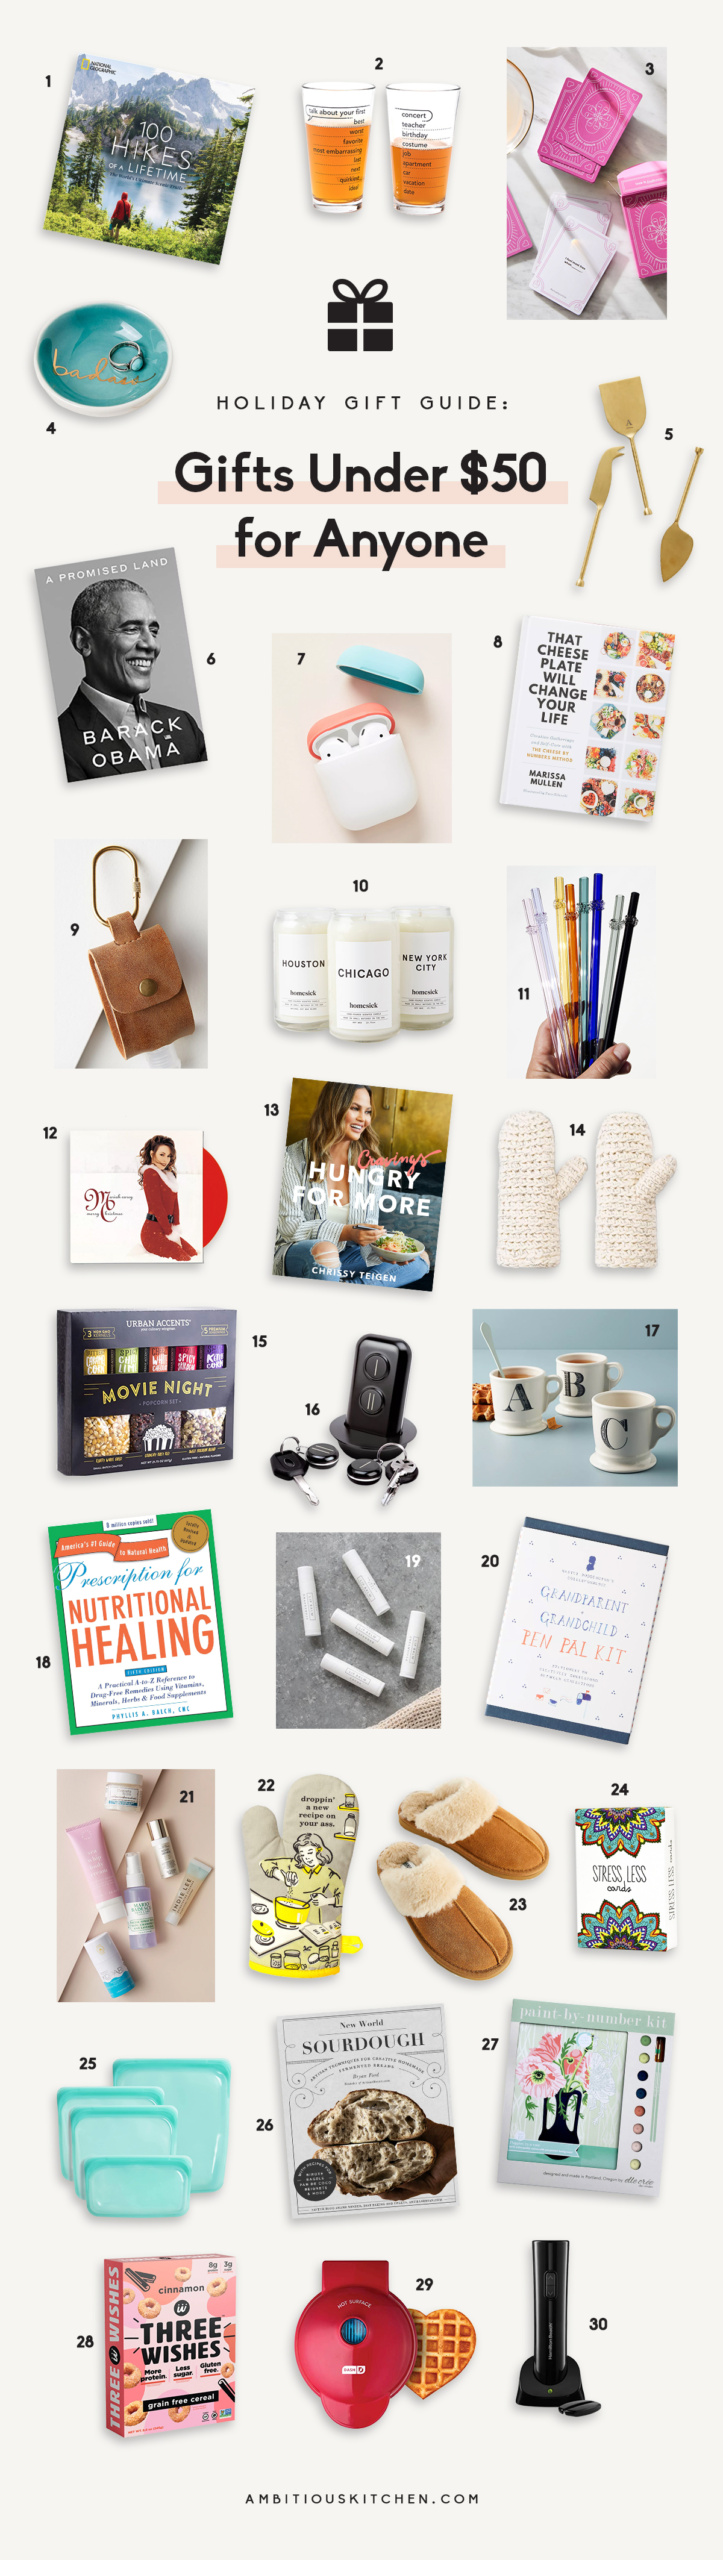 collage of gifts under $50